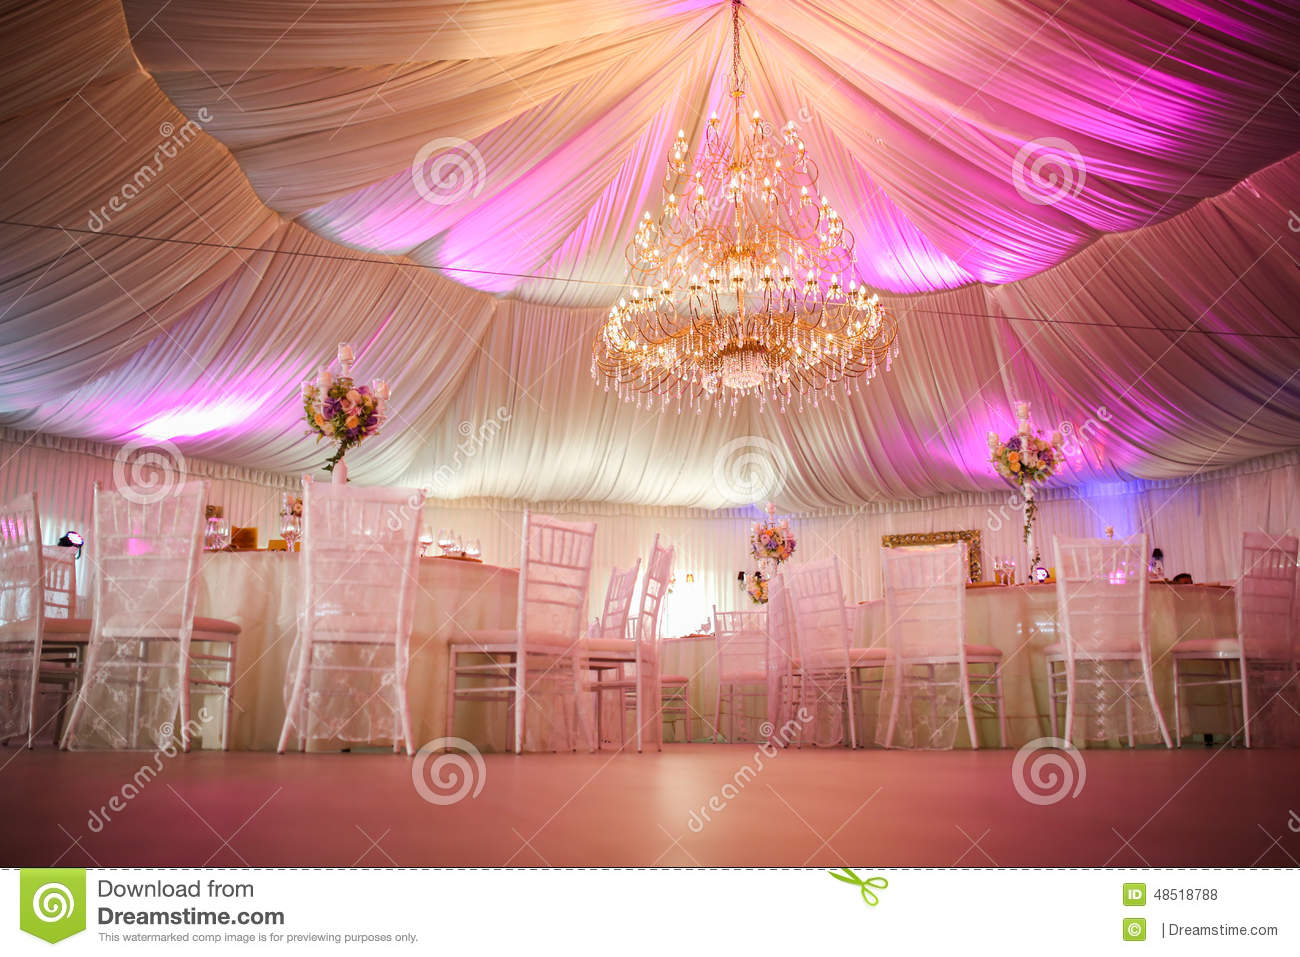 Interior of a wedding tent decoration ready for guests for Wedding interior decoration images